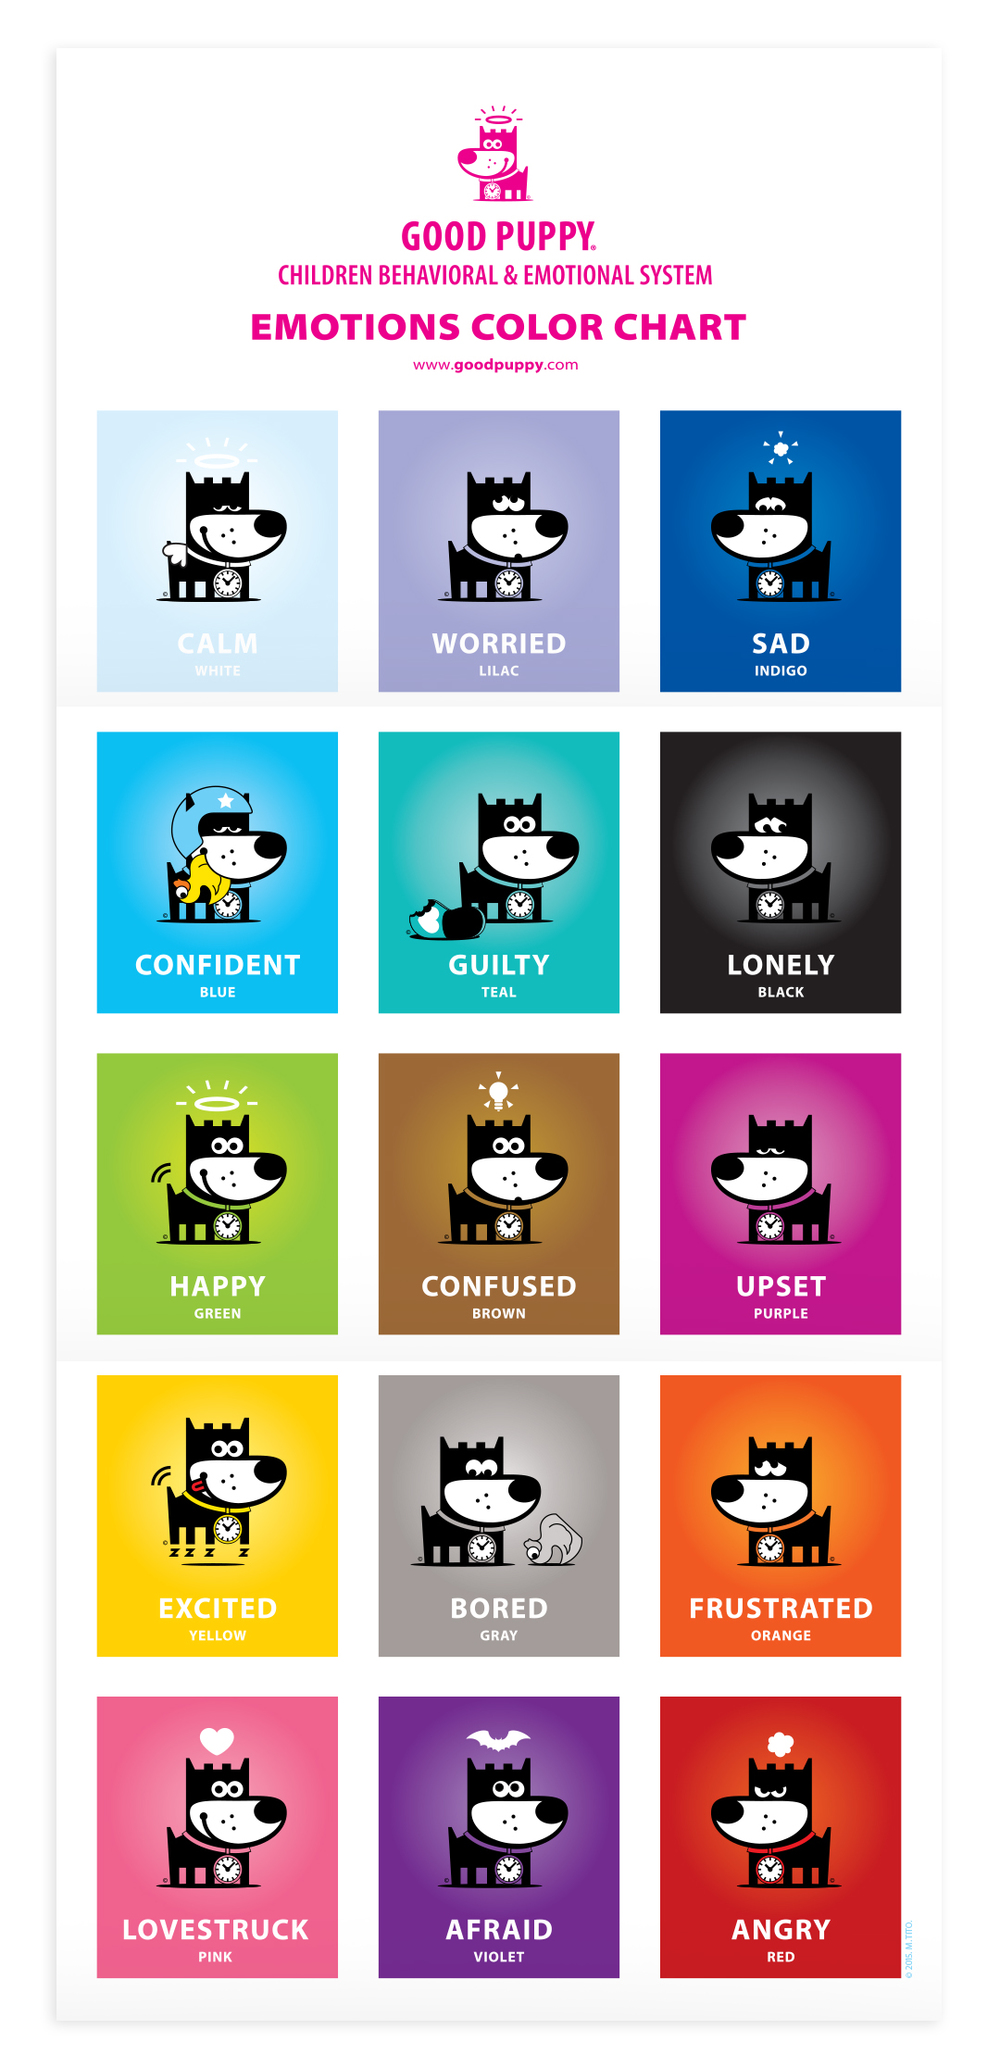 http://goodpuppy.com/shop/good-puppy-children-behavioral-emotional-system-emotions-color-wall-chart